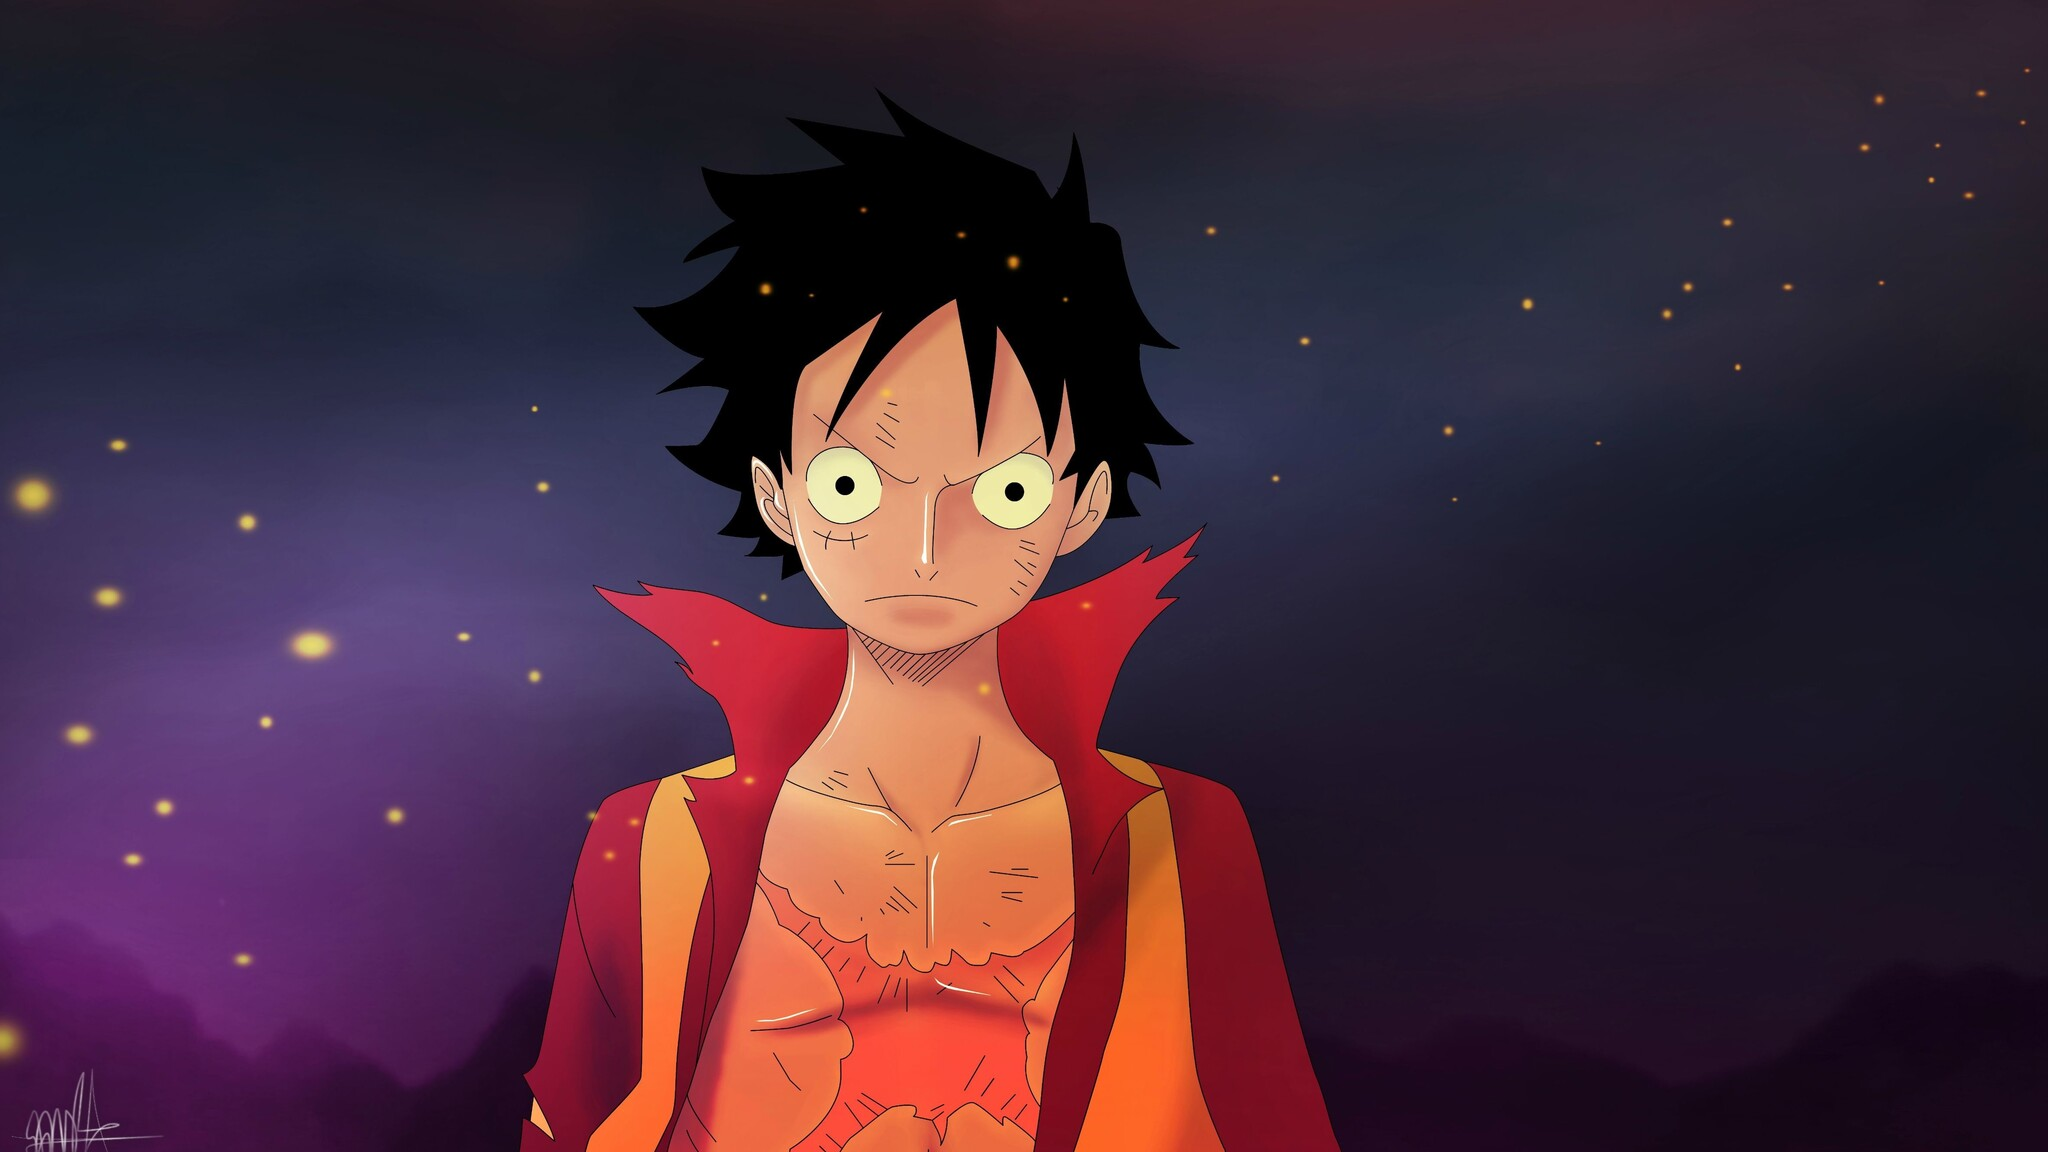 2048x1152 Monkey D Luffy One Piece 4k 2048x1152 Resolution